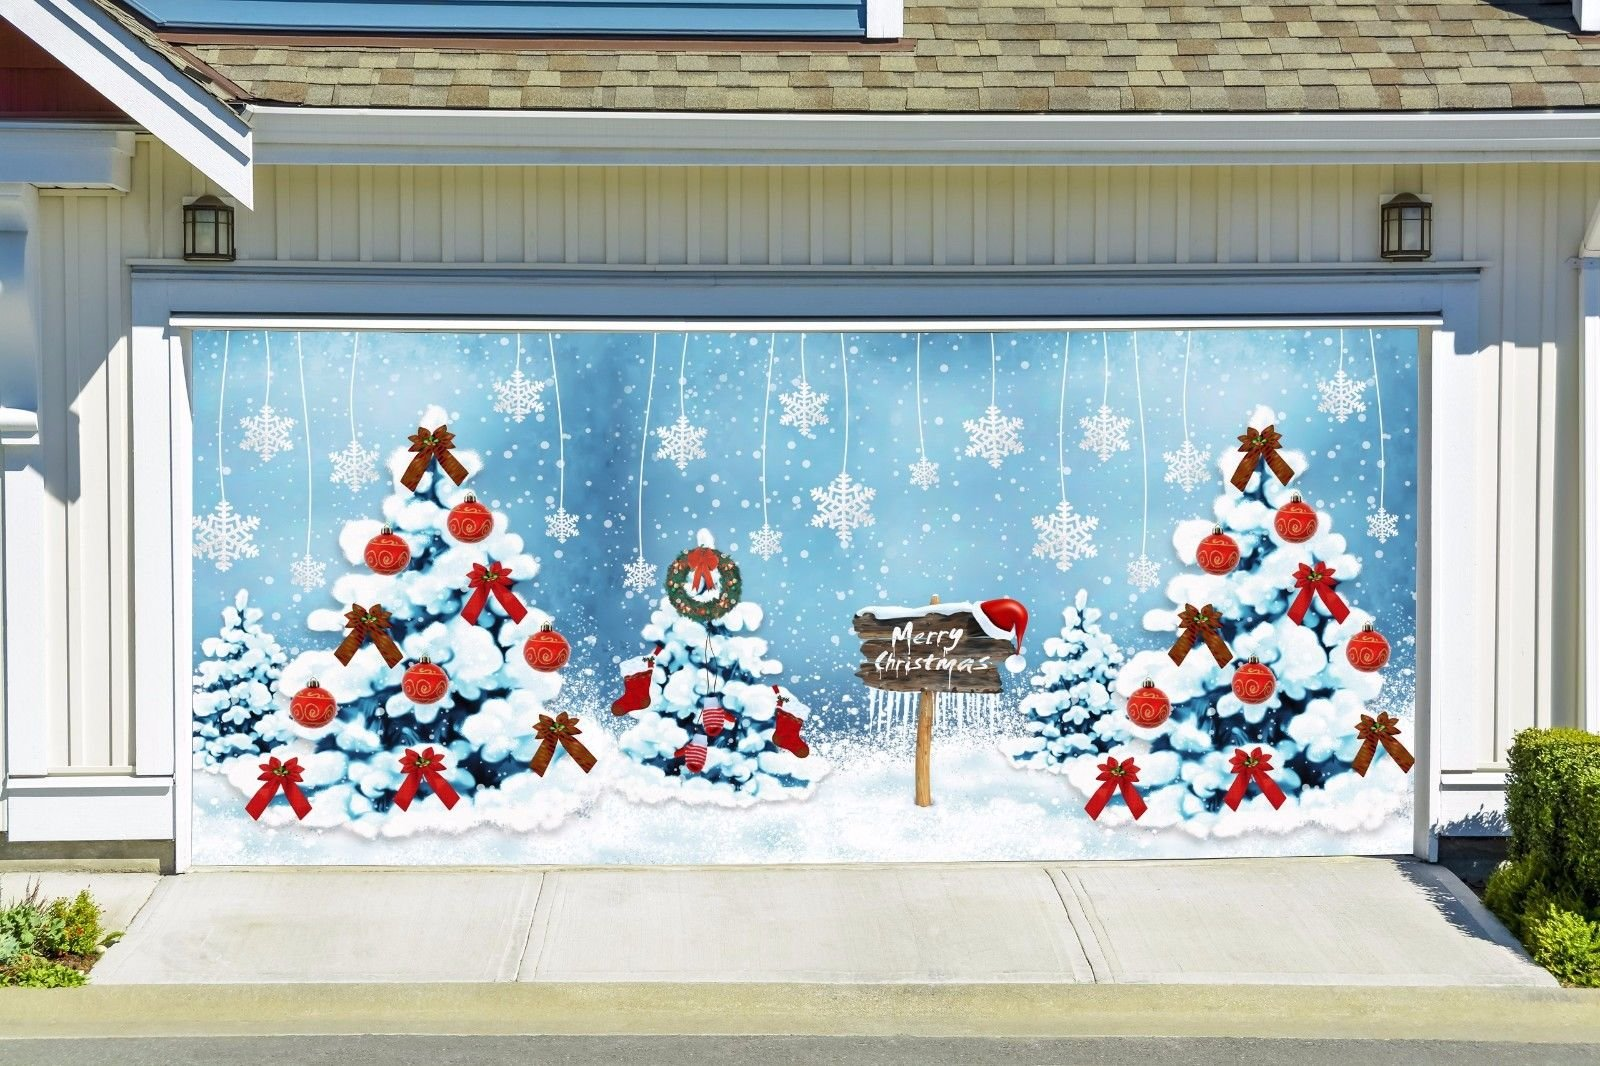 Colorful Christmas Tree Snowflakes Banners for 2 Car Garage Door Covers Outdoor Billboard Garage Door Holiday Christmas Decor Full Color House Murals Made In The USA size 82x188 inches DAV20 by WallTattooHome